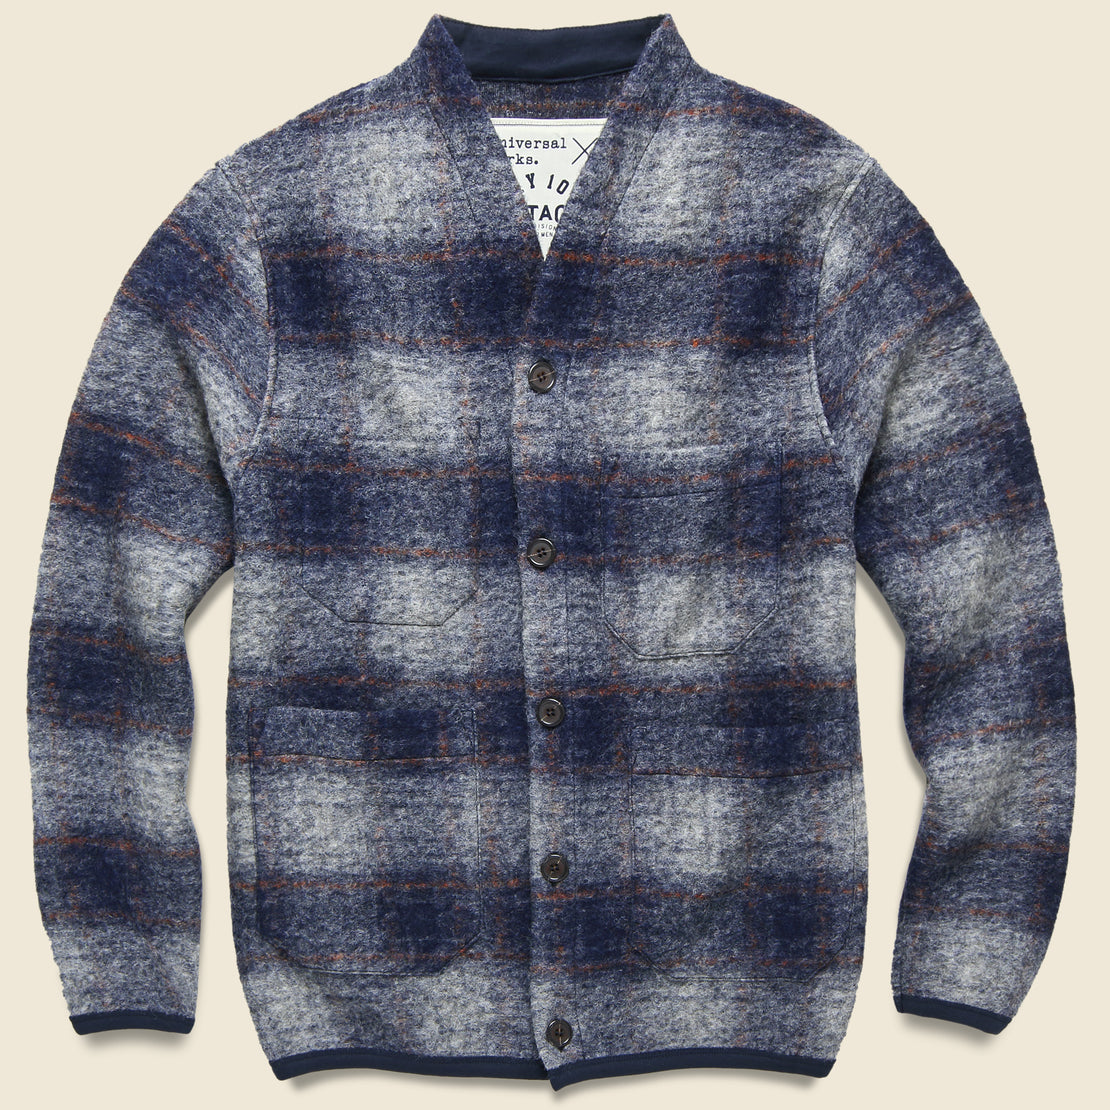 Universal Works Wool Fleece Cardigan - Navy Check